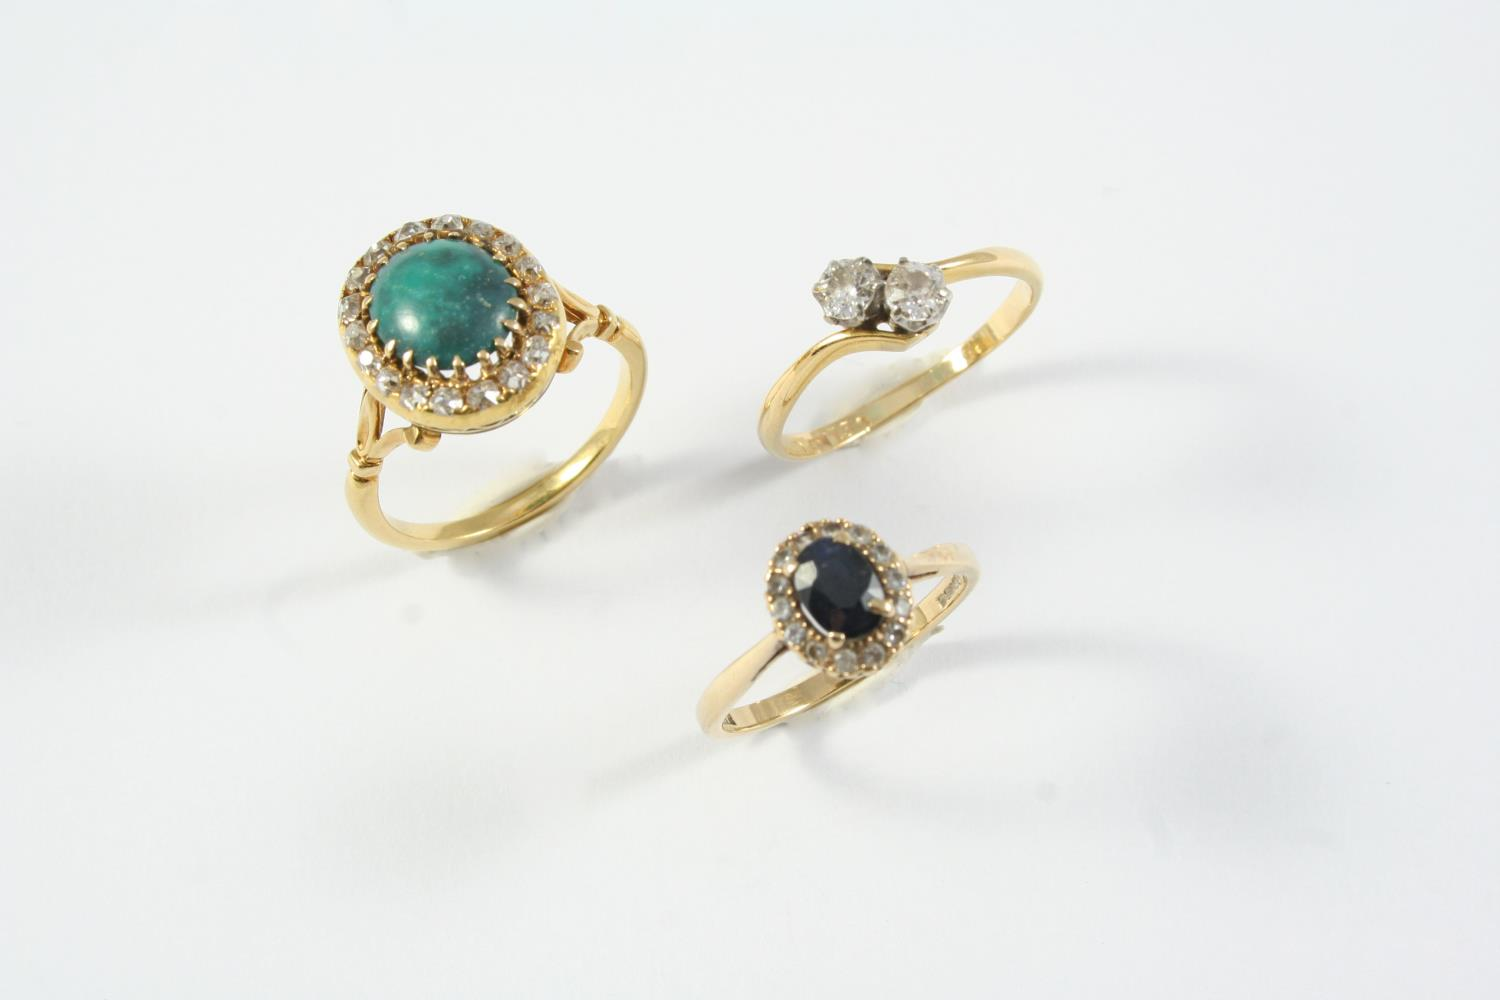 A SAPPHIRE AND DIAMOND CLUSTER RING the oval-shaped sapphire is set within a surround of circular-